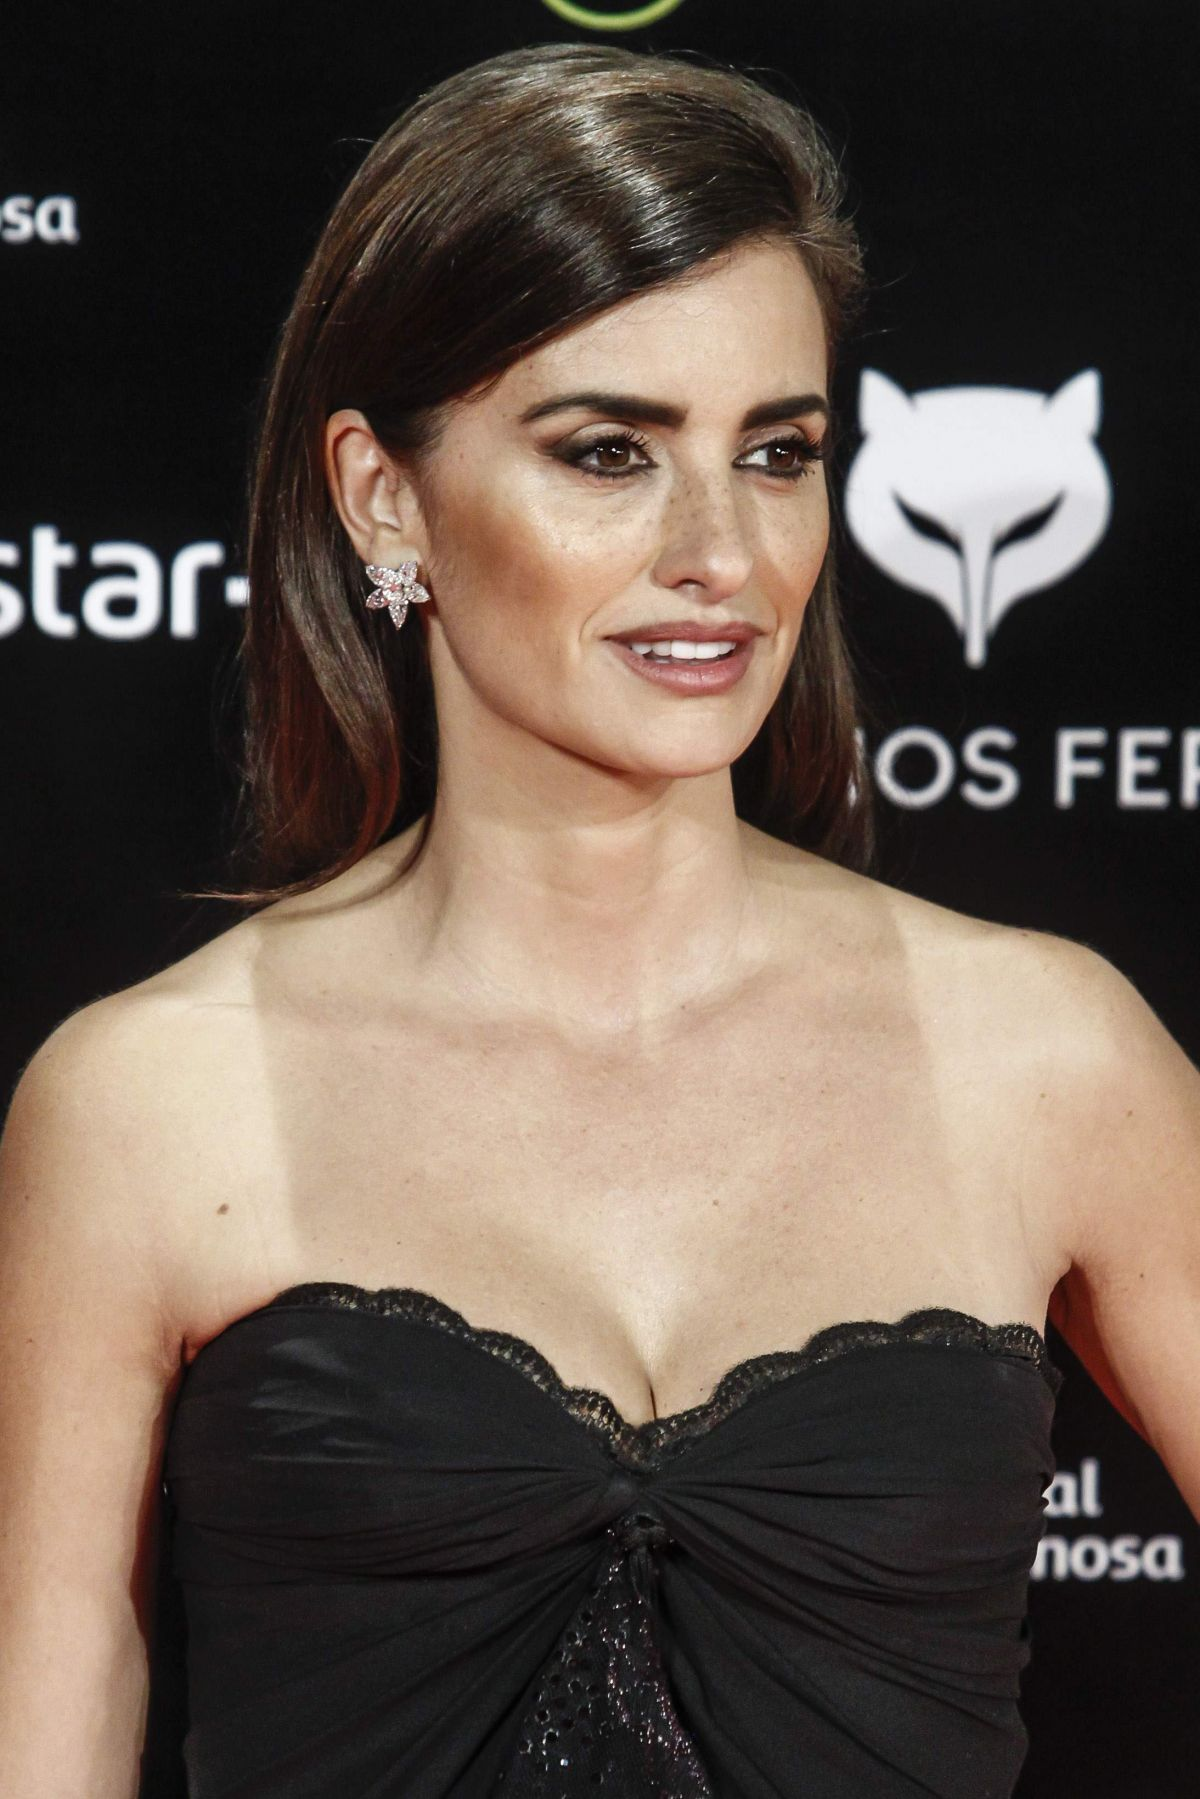 PENELOPE CRUZ at Froz Awards 2016 in Madrid 01/19/2016